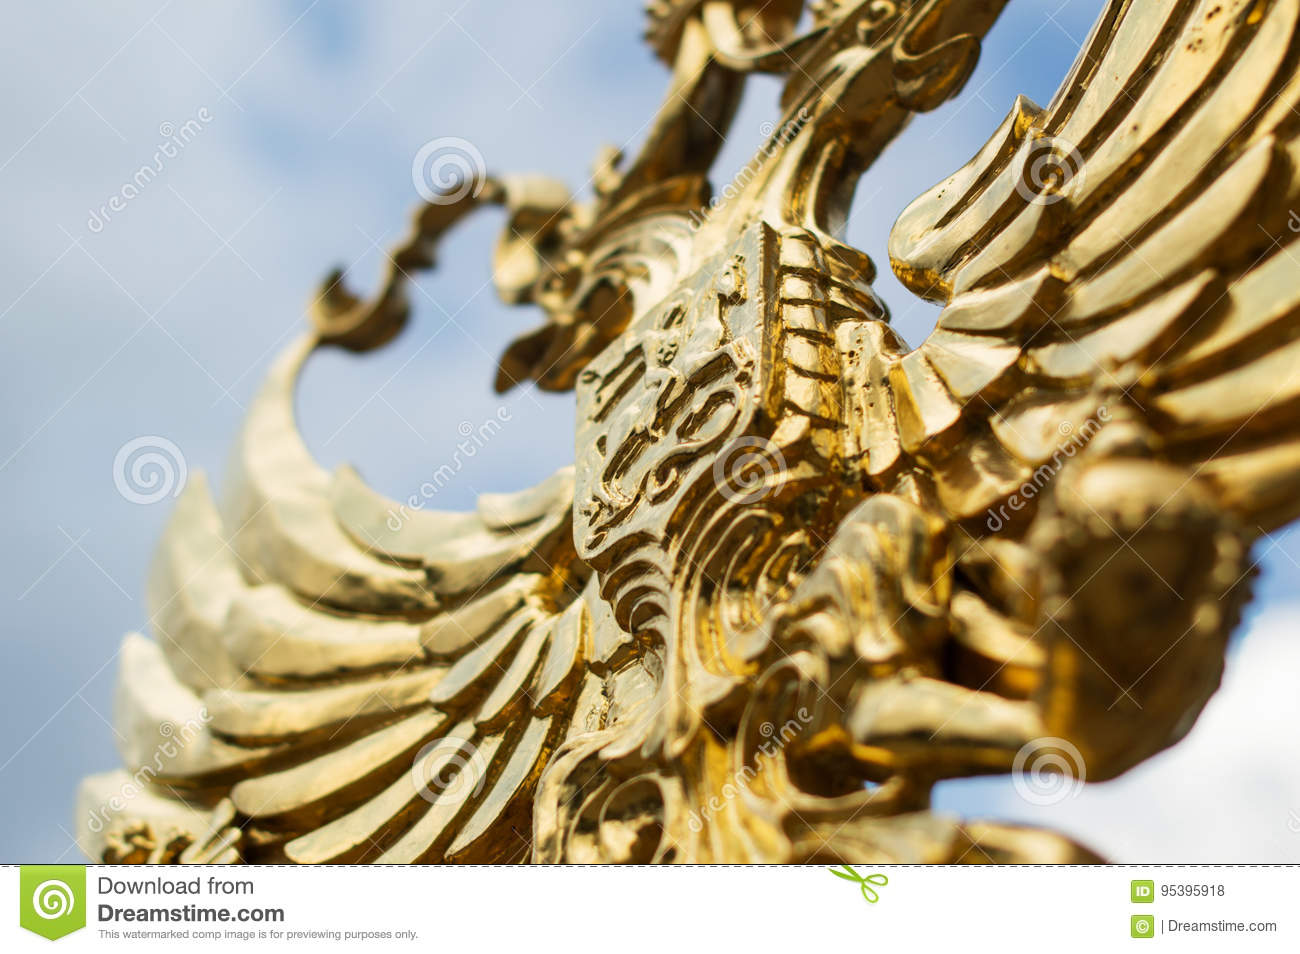 Golden Eagle Symbol Of The Emblem Of Russia Stock Photo Image Of